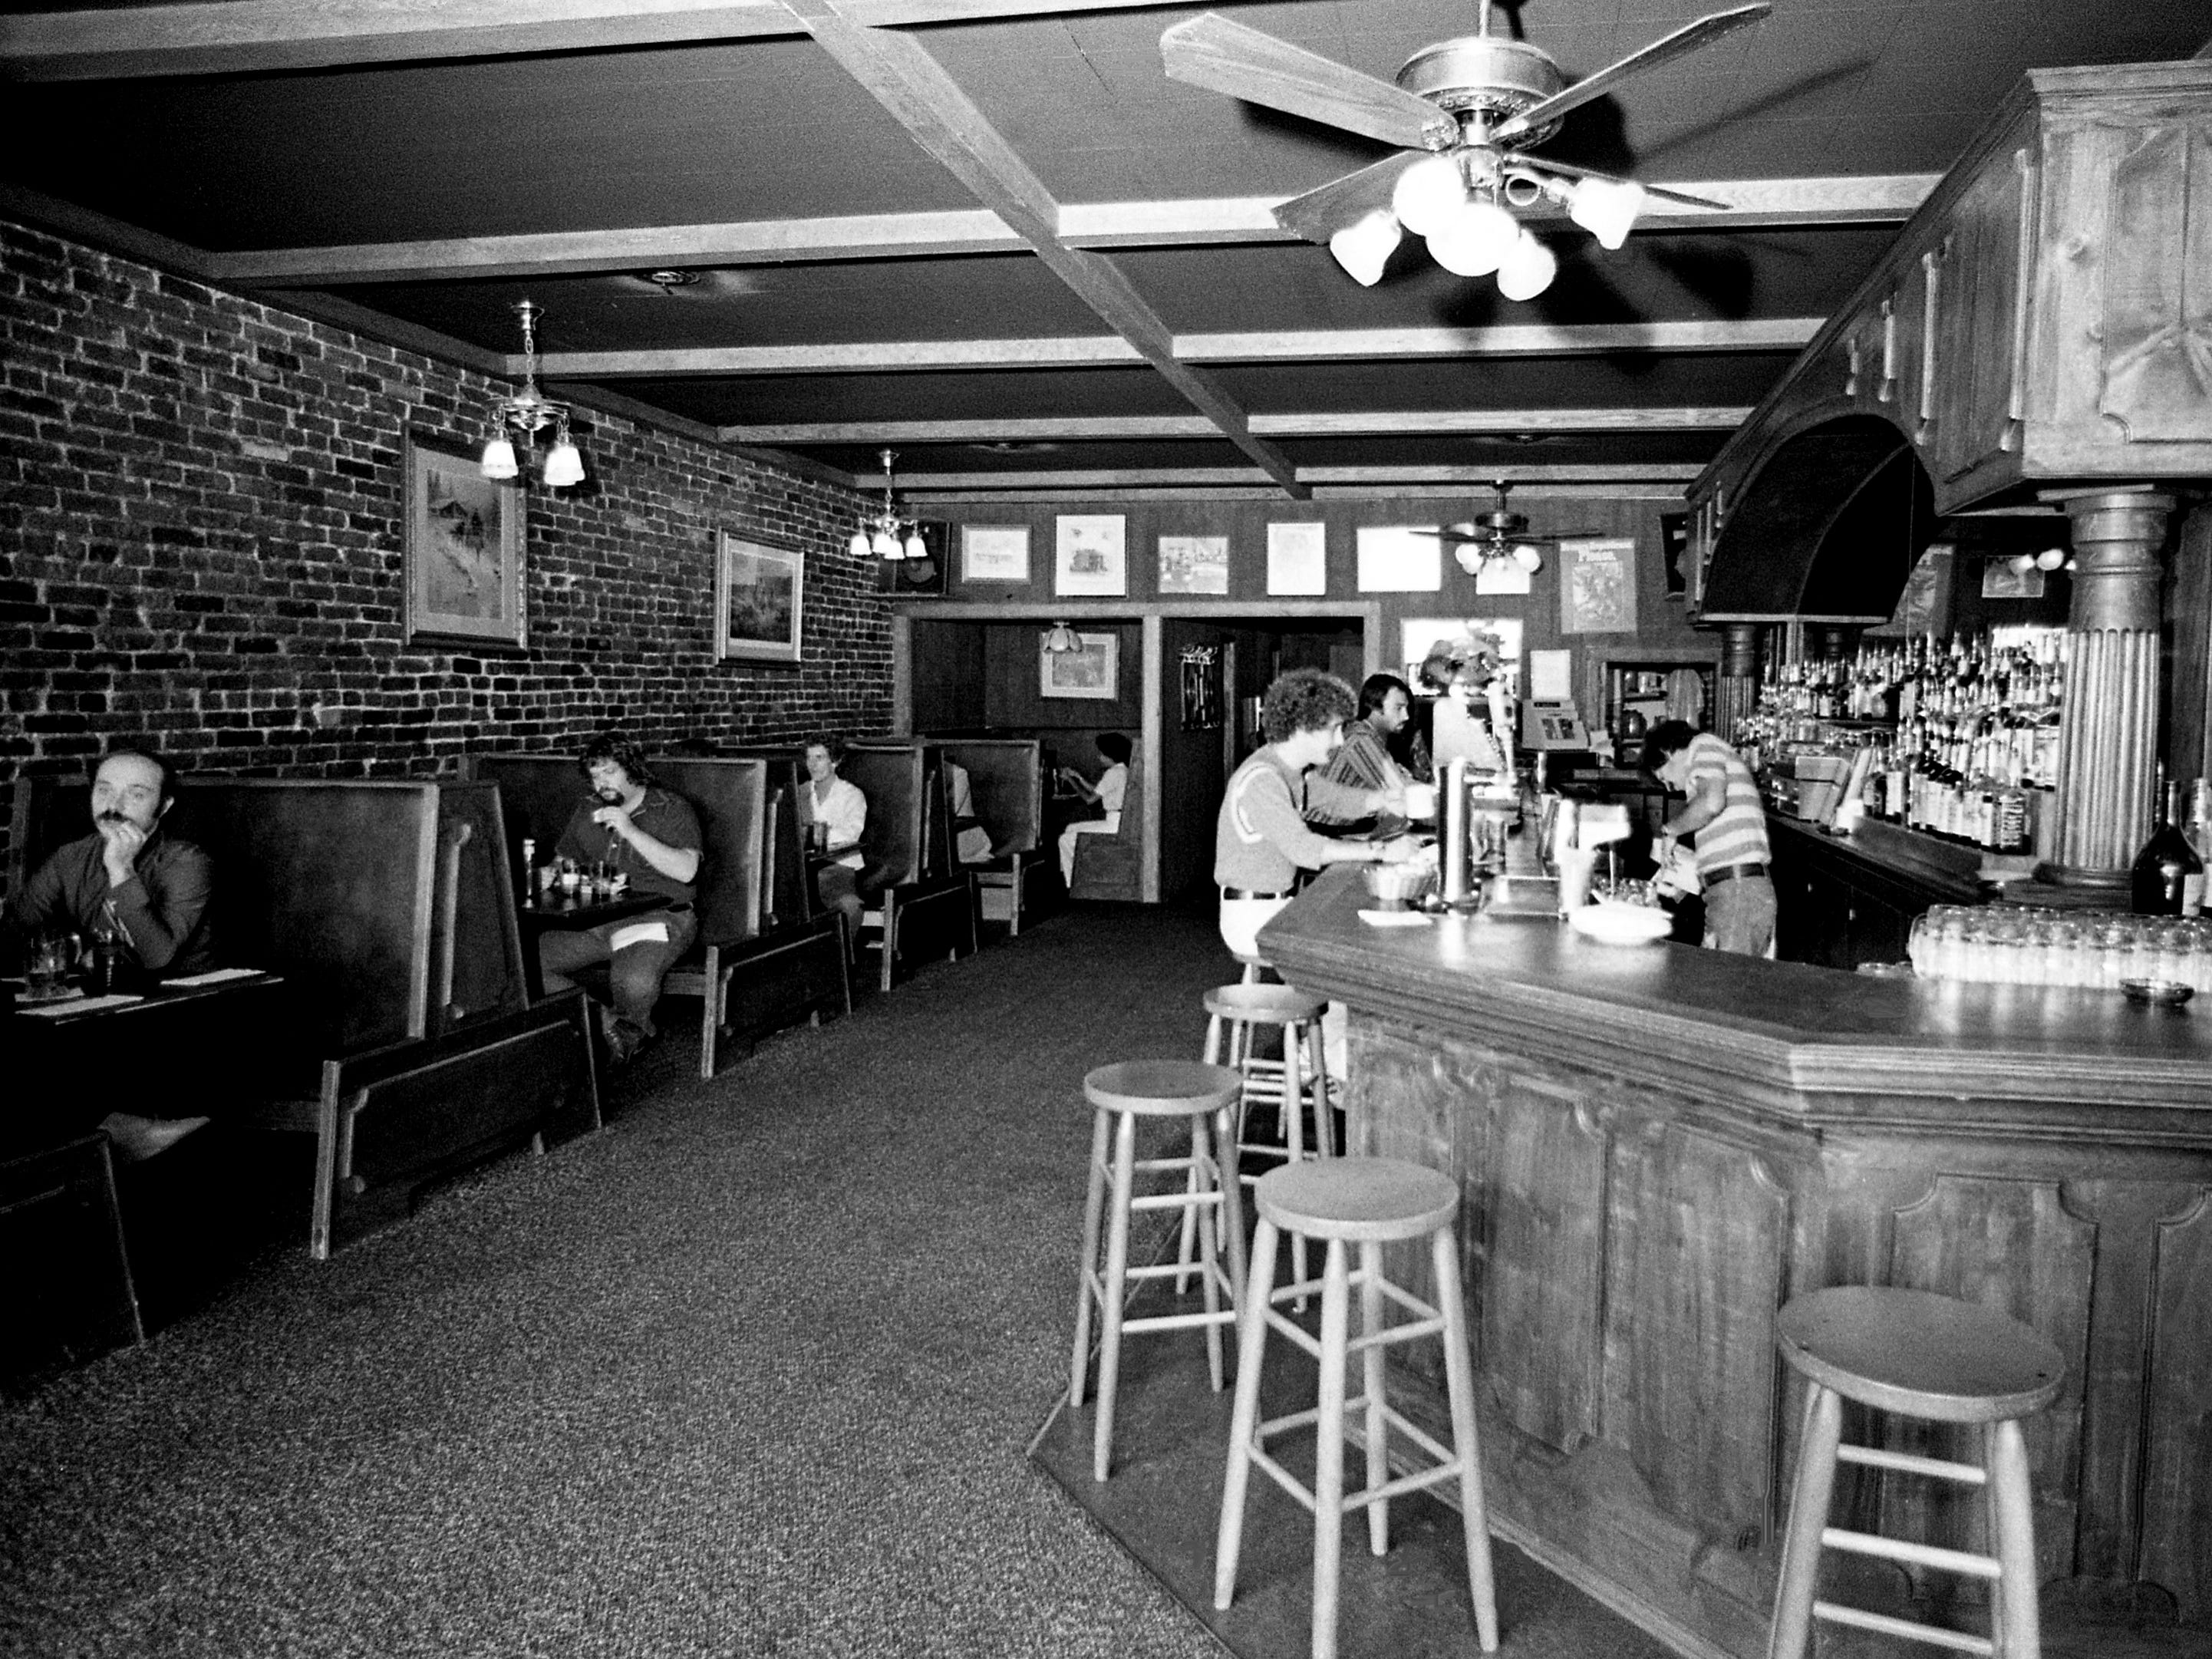 """In the new addition to the Gold Rush here Sept. 9, 1976, one can enjoy sandwiches on """"Texas Toast"""" or Mexican food in an atmosphere harking back to the stand-up saloon days of the wild, wild West. The Elliston Place establishment recently reopened its doors as an expanded restaurant."""